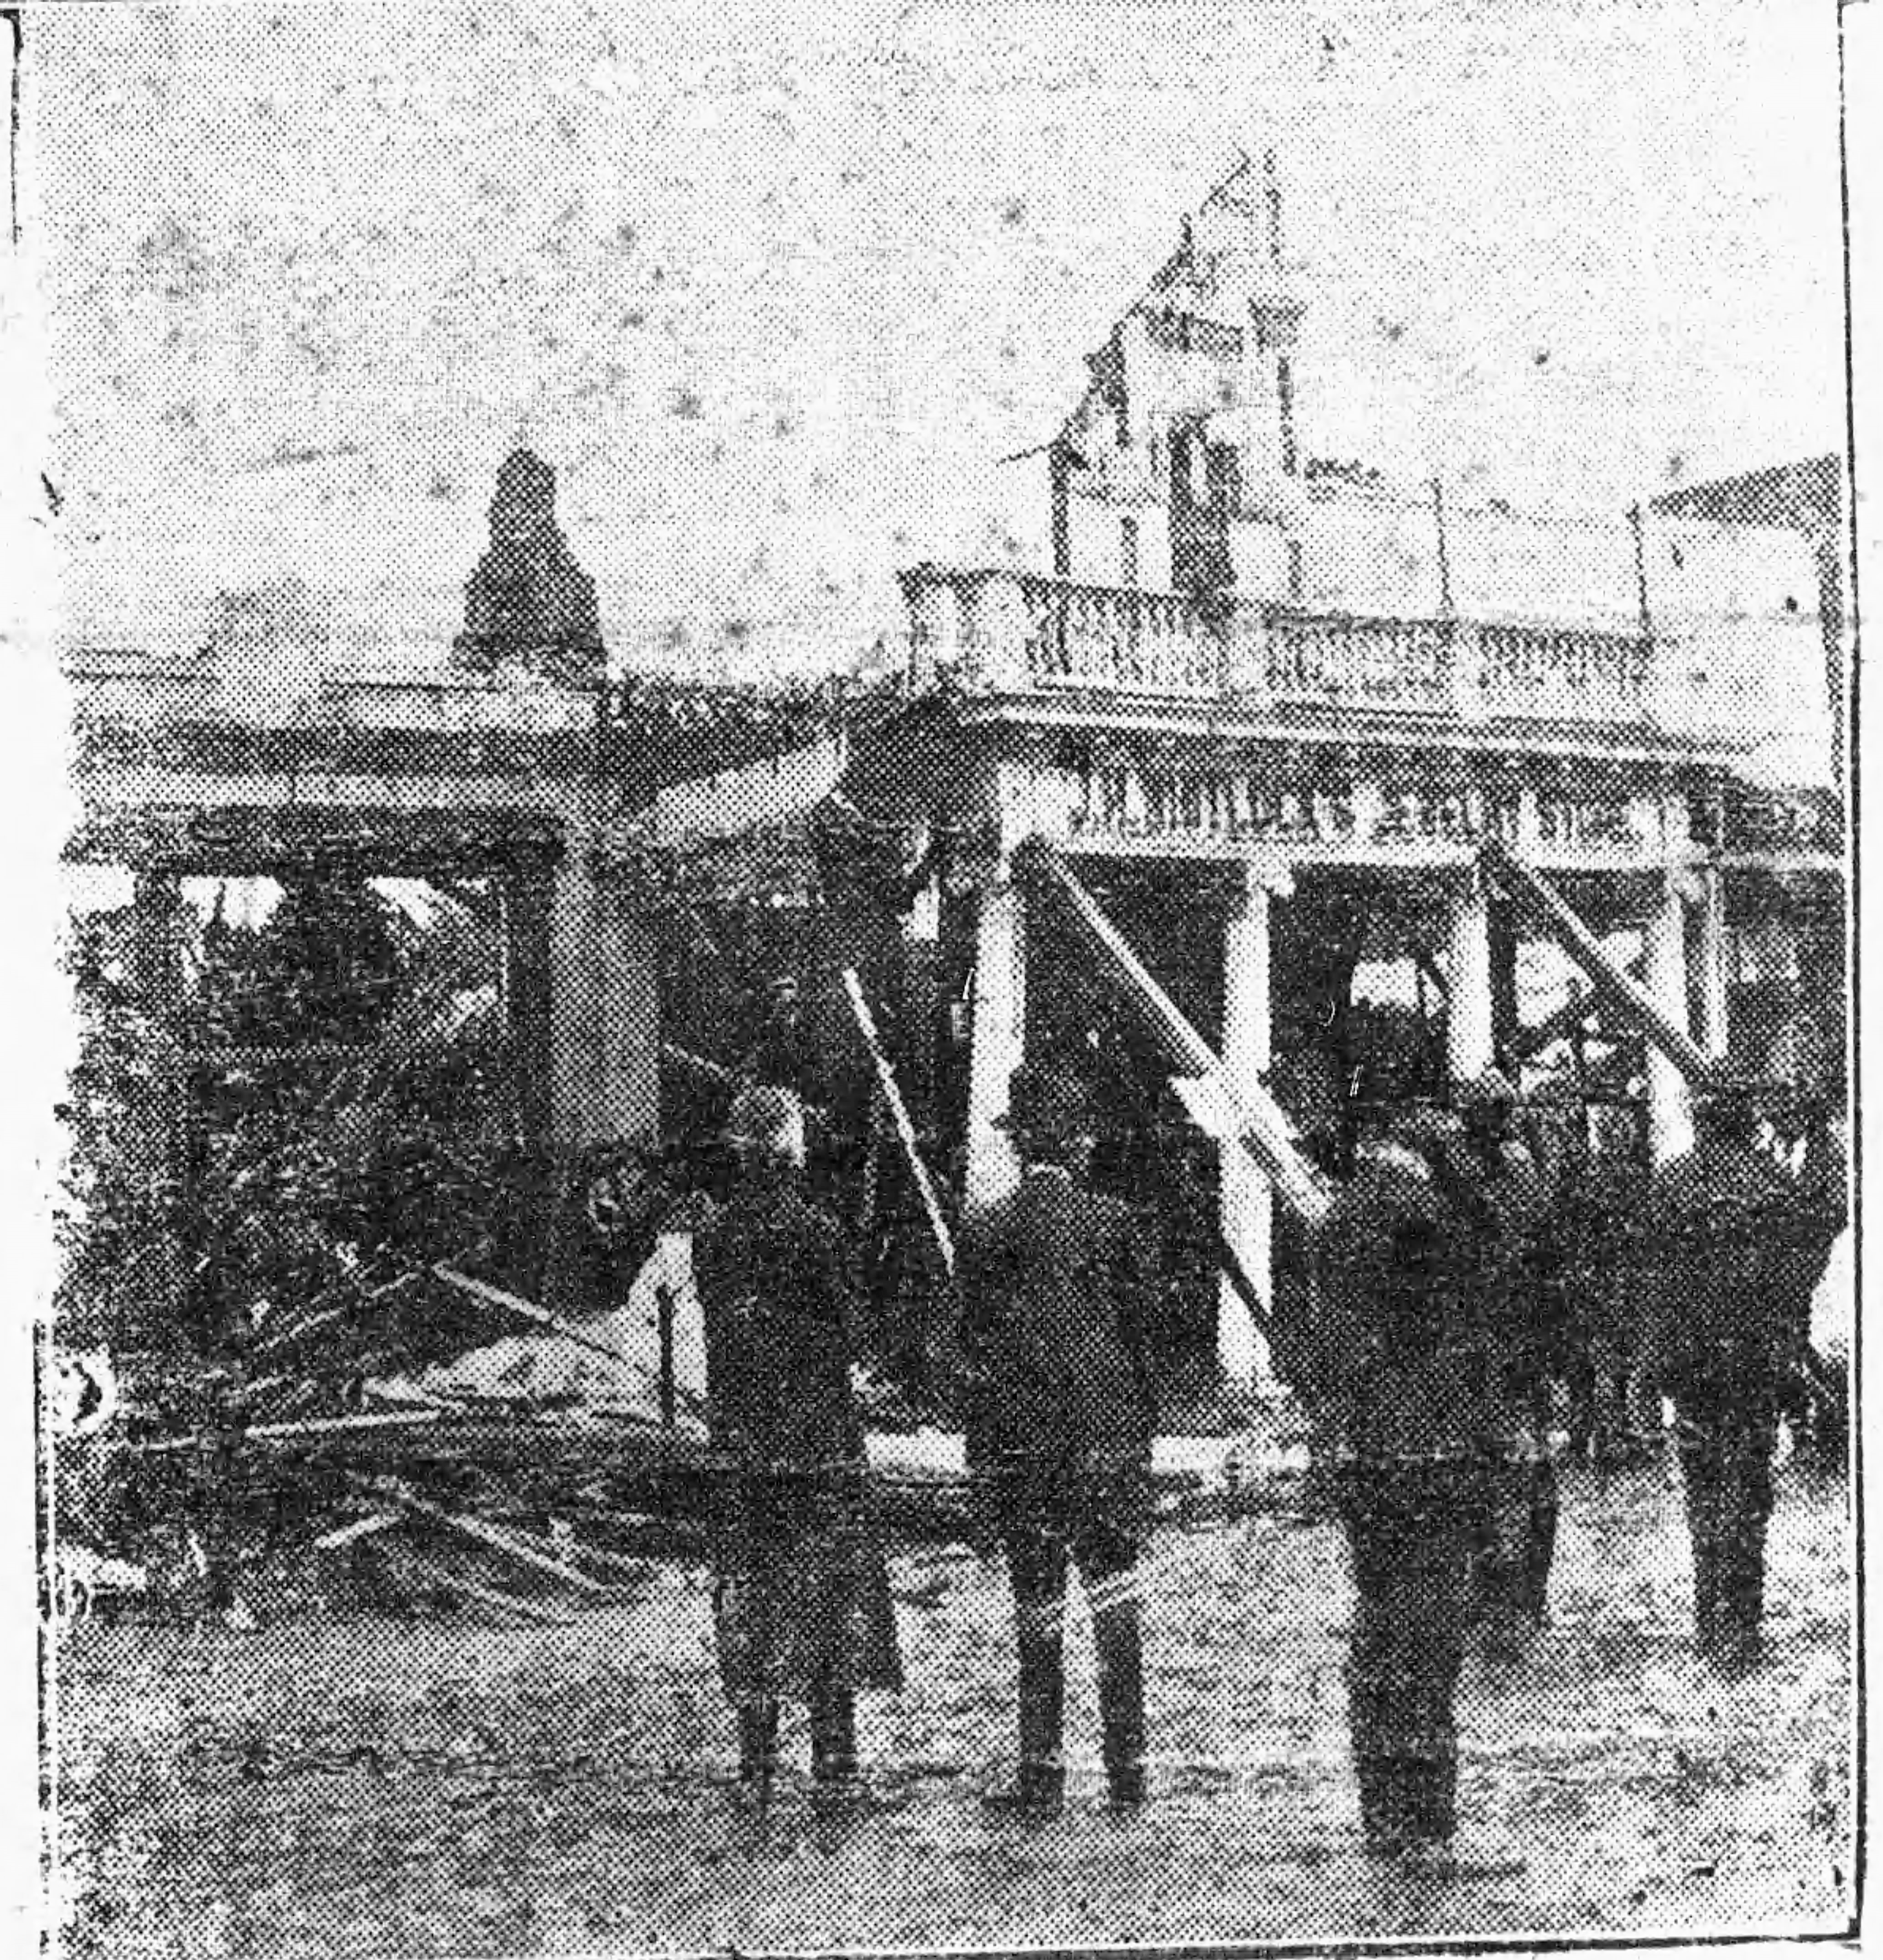 Eufaula, phoenix-like, rose again with renewed vigor from the ruins of a tornado in March 1919